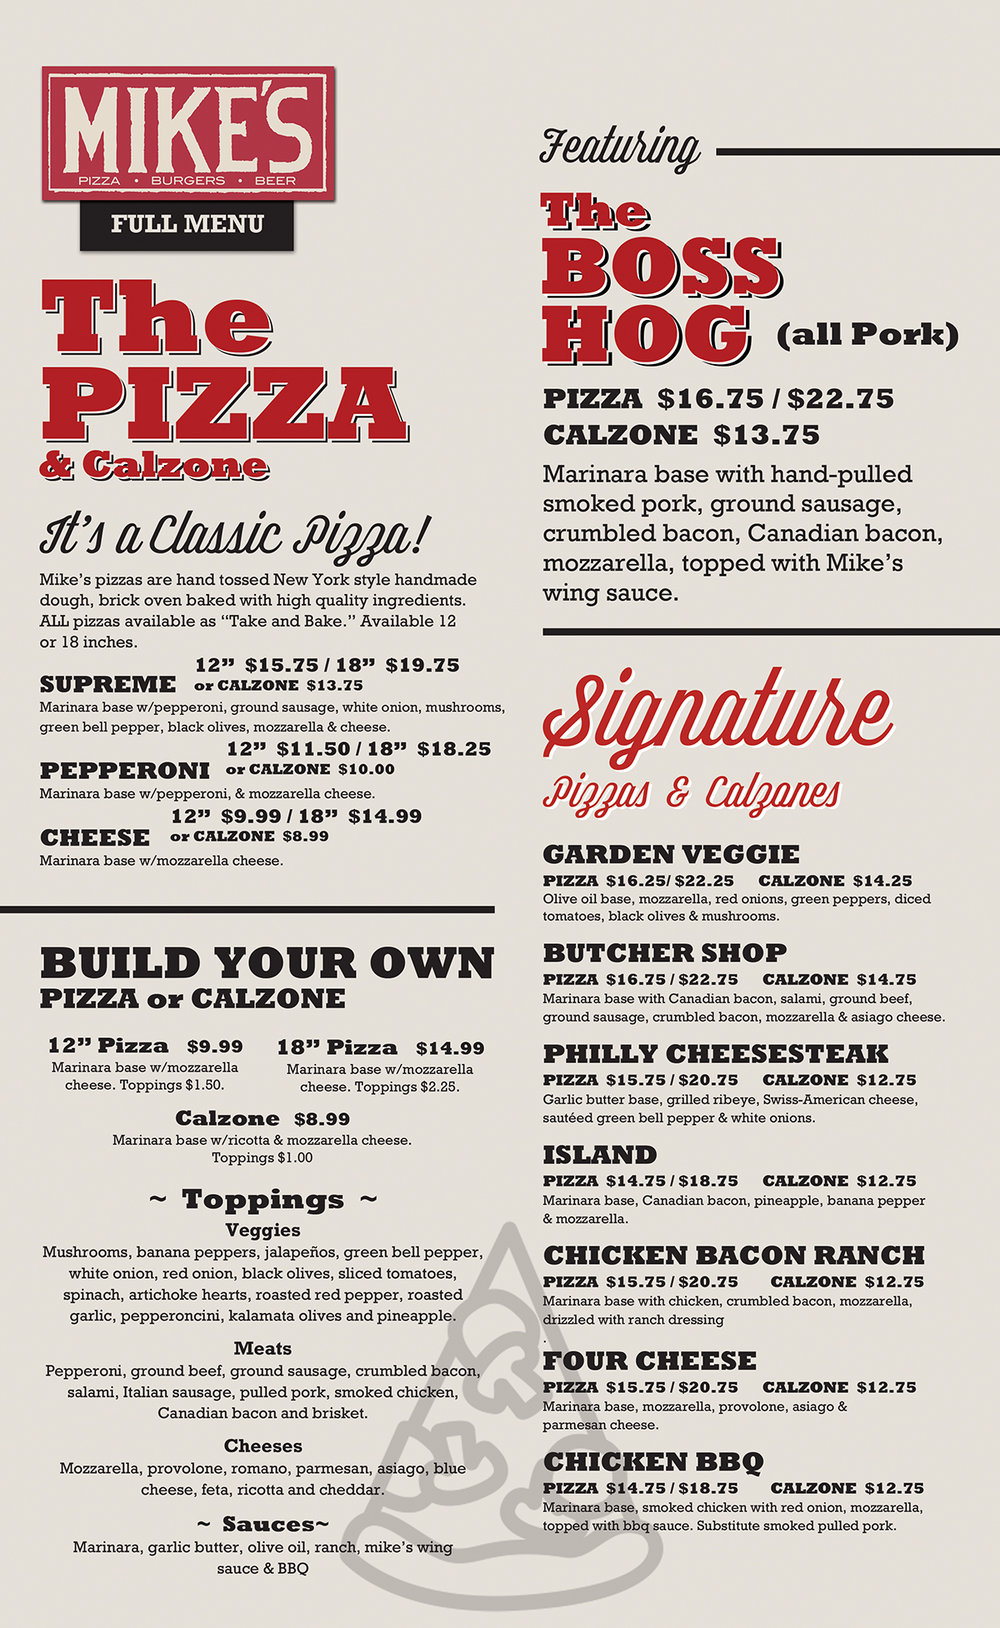 MIKES_pizzaBurger_menu_new_02_back_vFINAL_2019_FINALPRINT.jpg